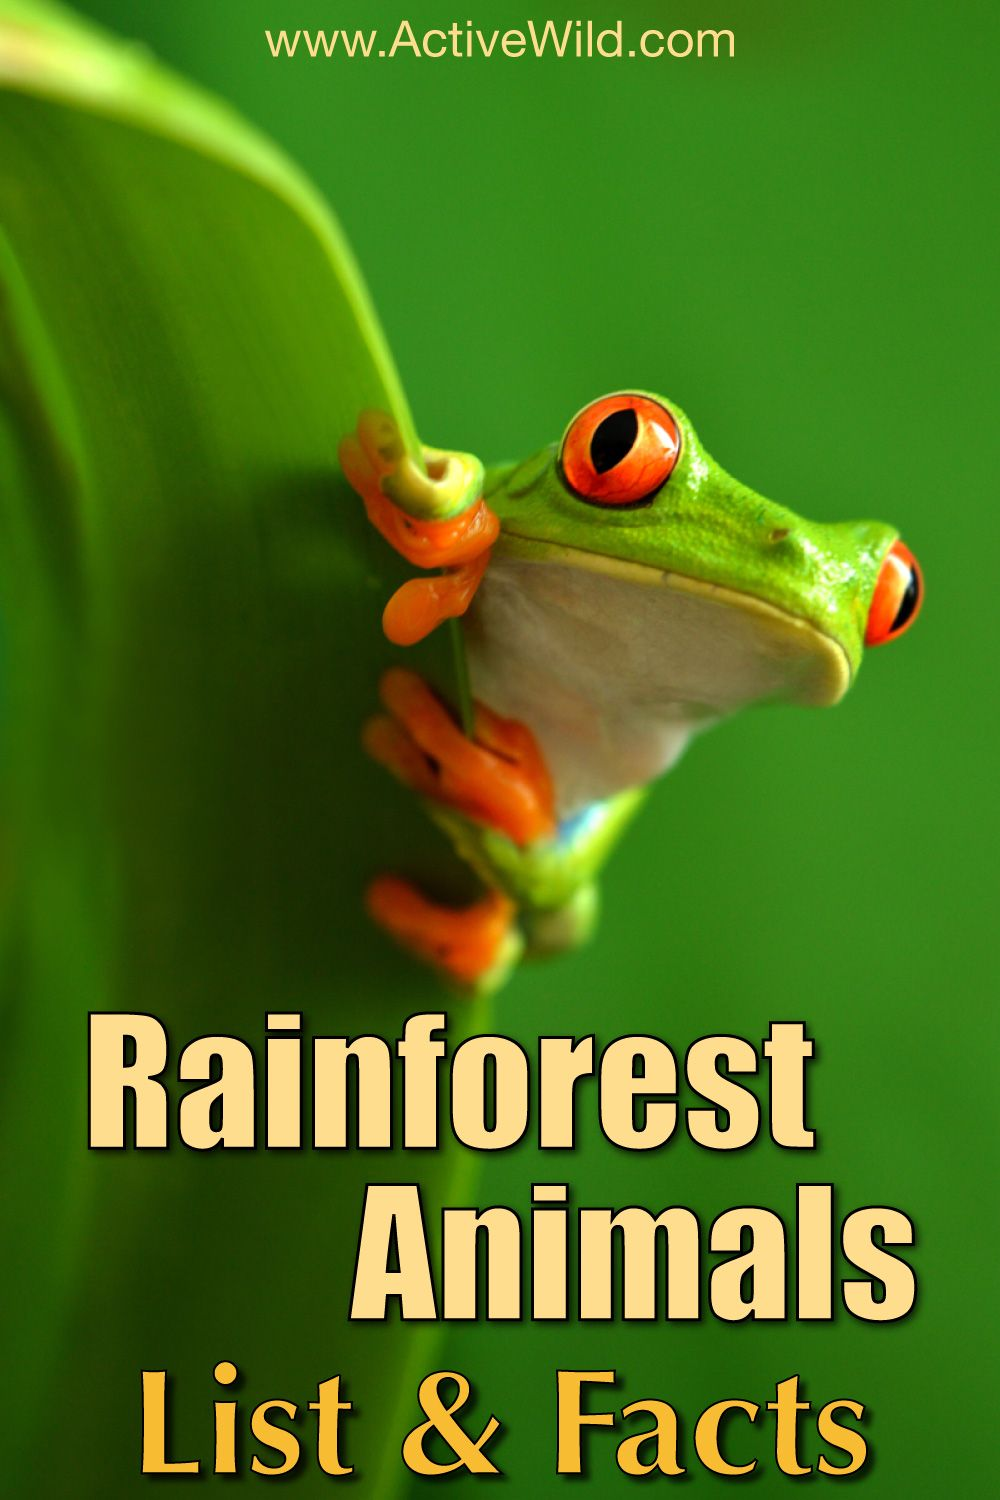 Rainforest Animals List With Pictures Facts Links To Further Information Rainforest Animals Rainforest Facts Rainforest Preschool